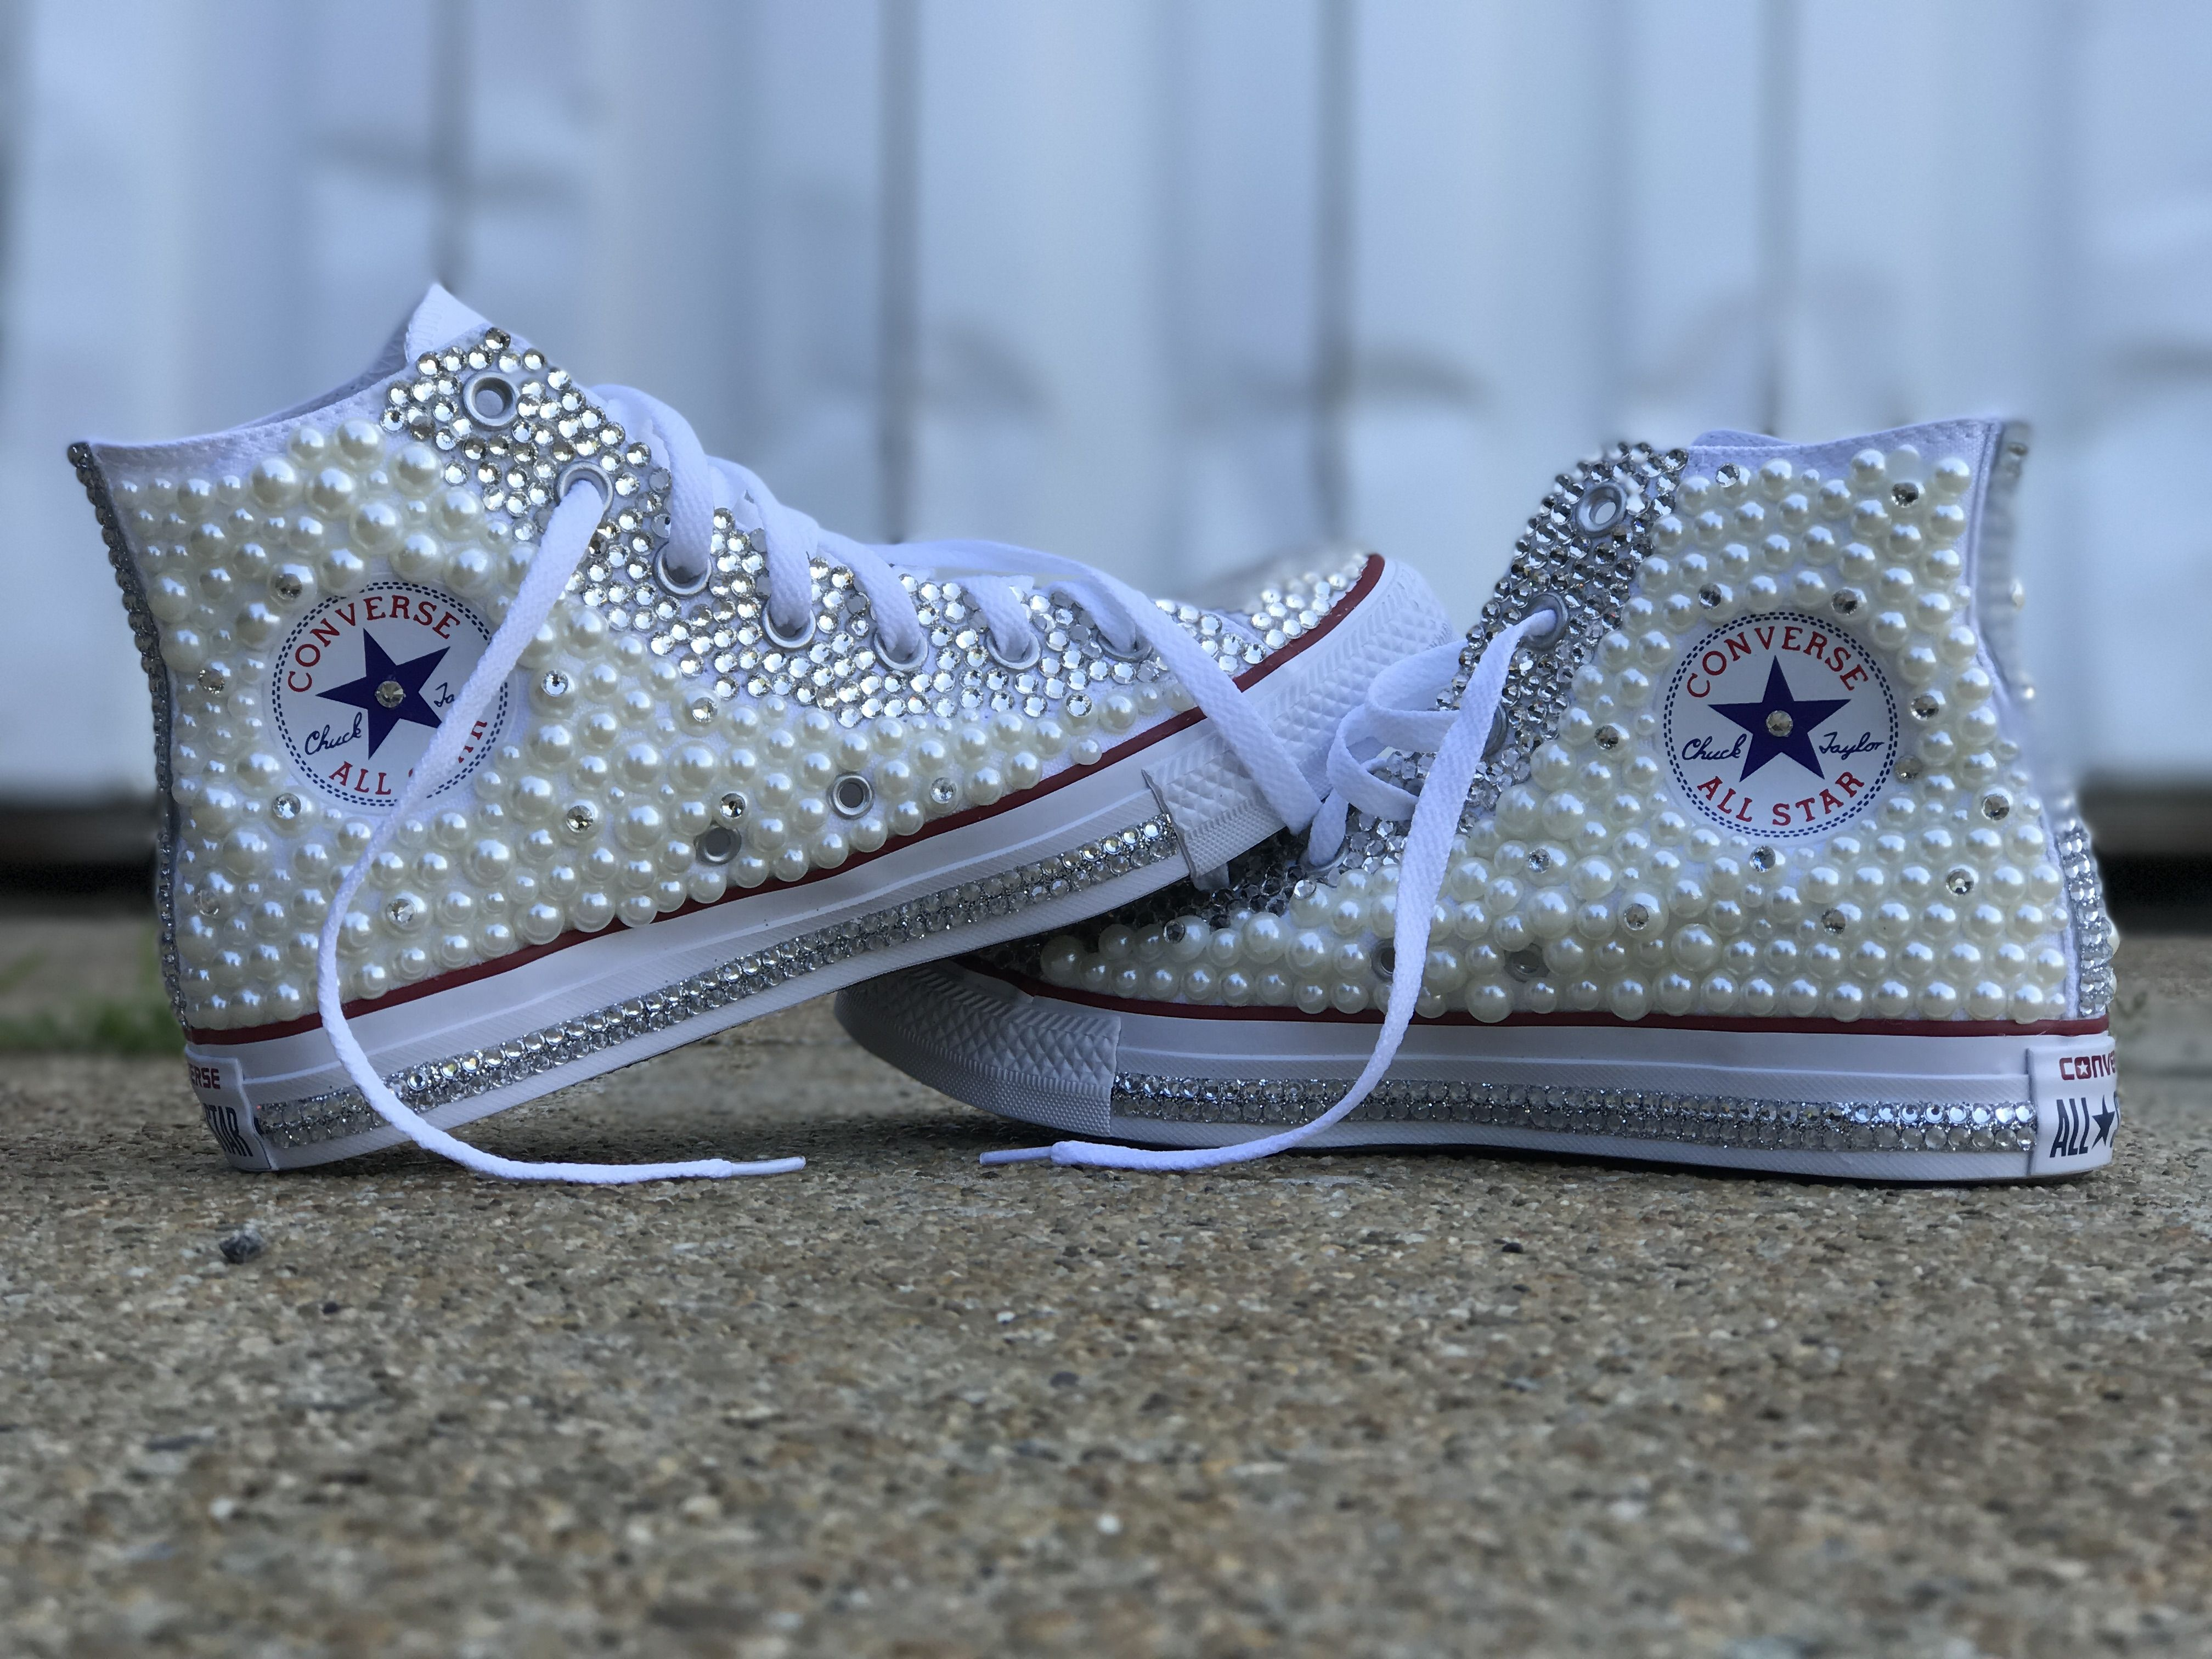 Diamonds and Pearls Chuck Taylor Converse Sneakers